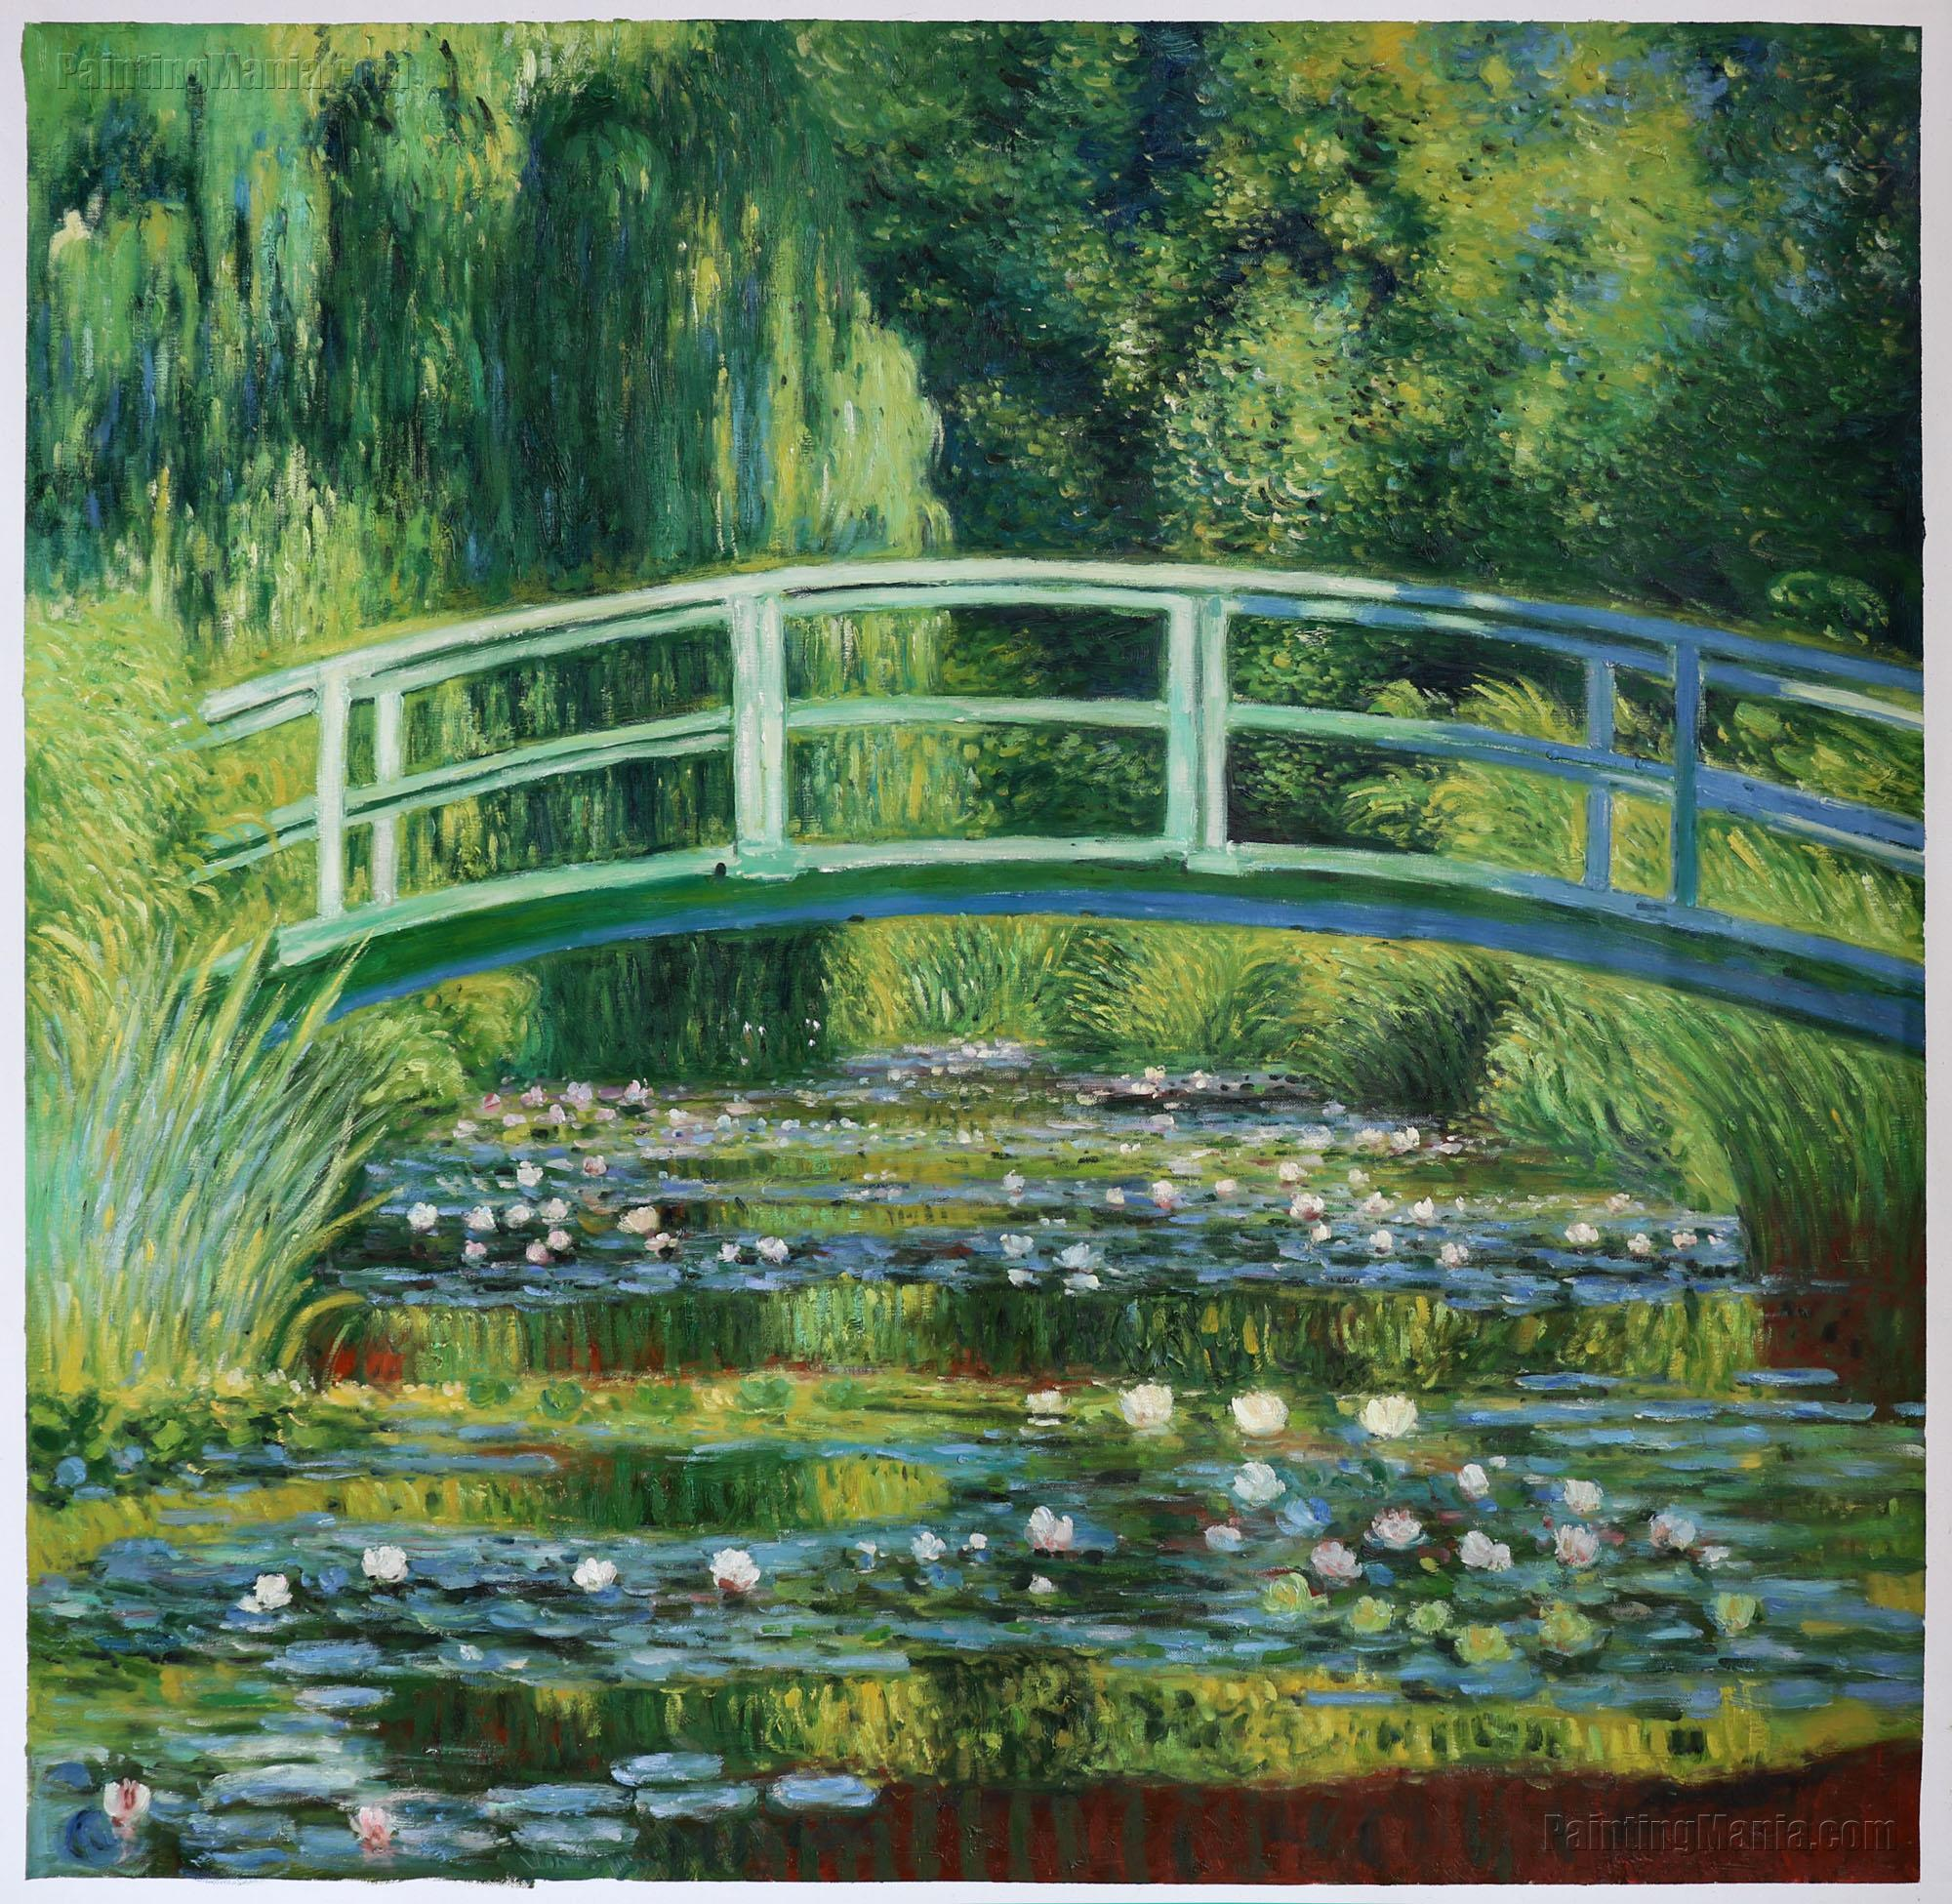 73d1b6575 The Water-Lily Pond 18 - Claude Monet Paintings